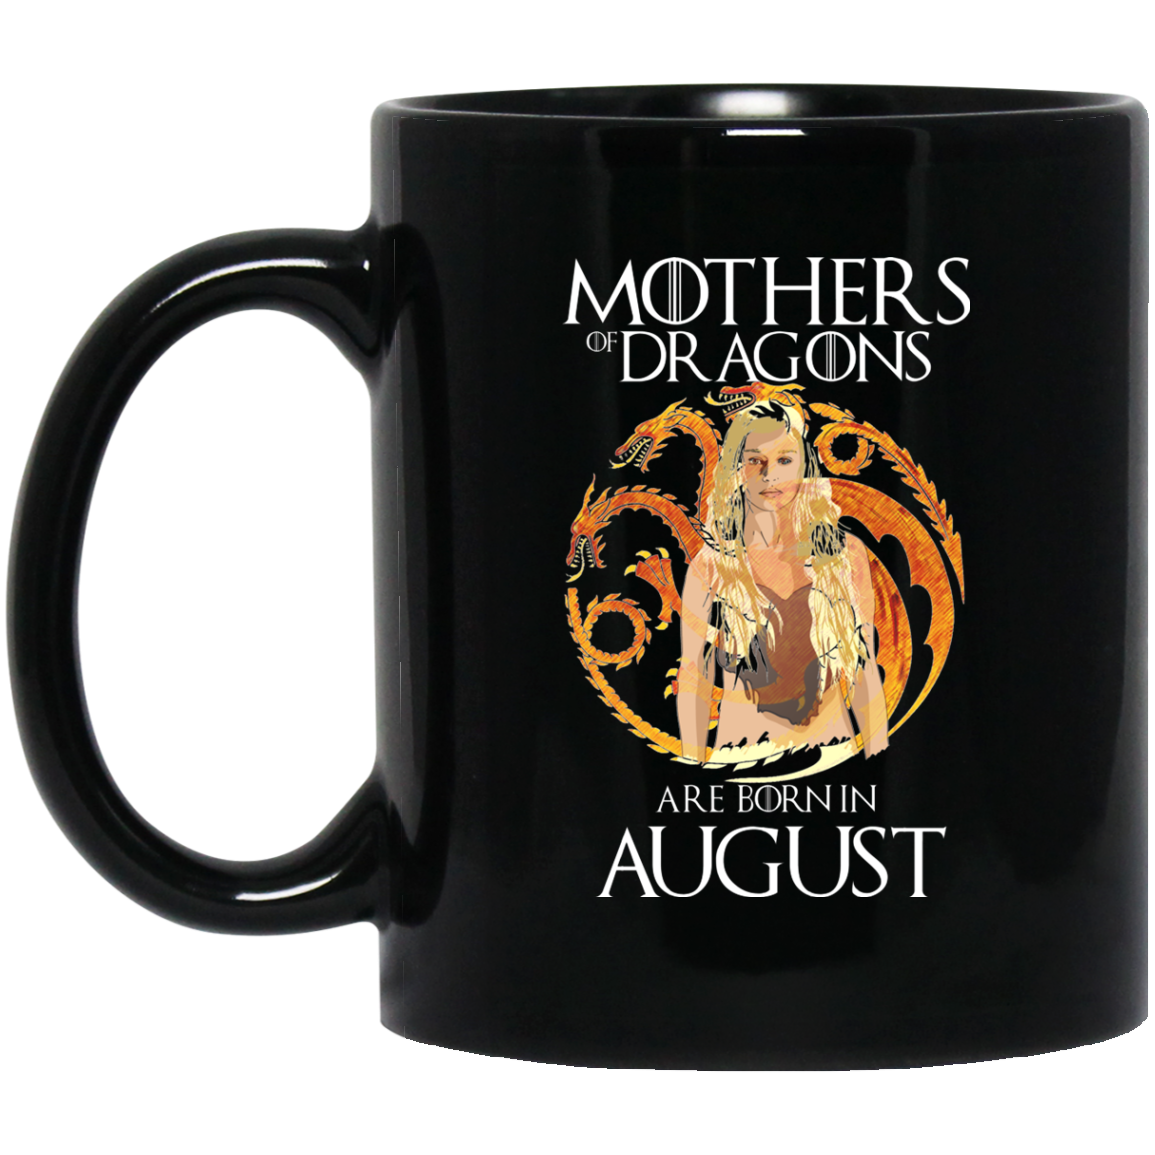 Mother Dragon Mug August Born Mug August Mugs 15Oz